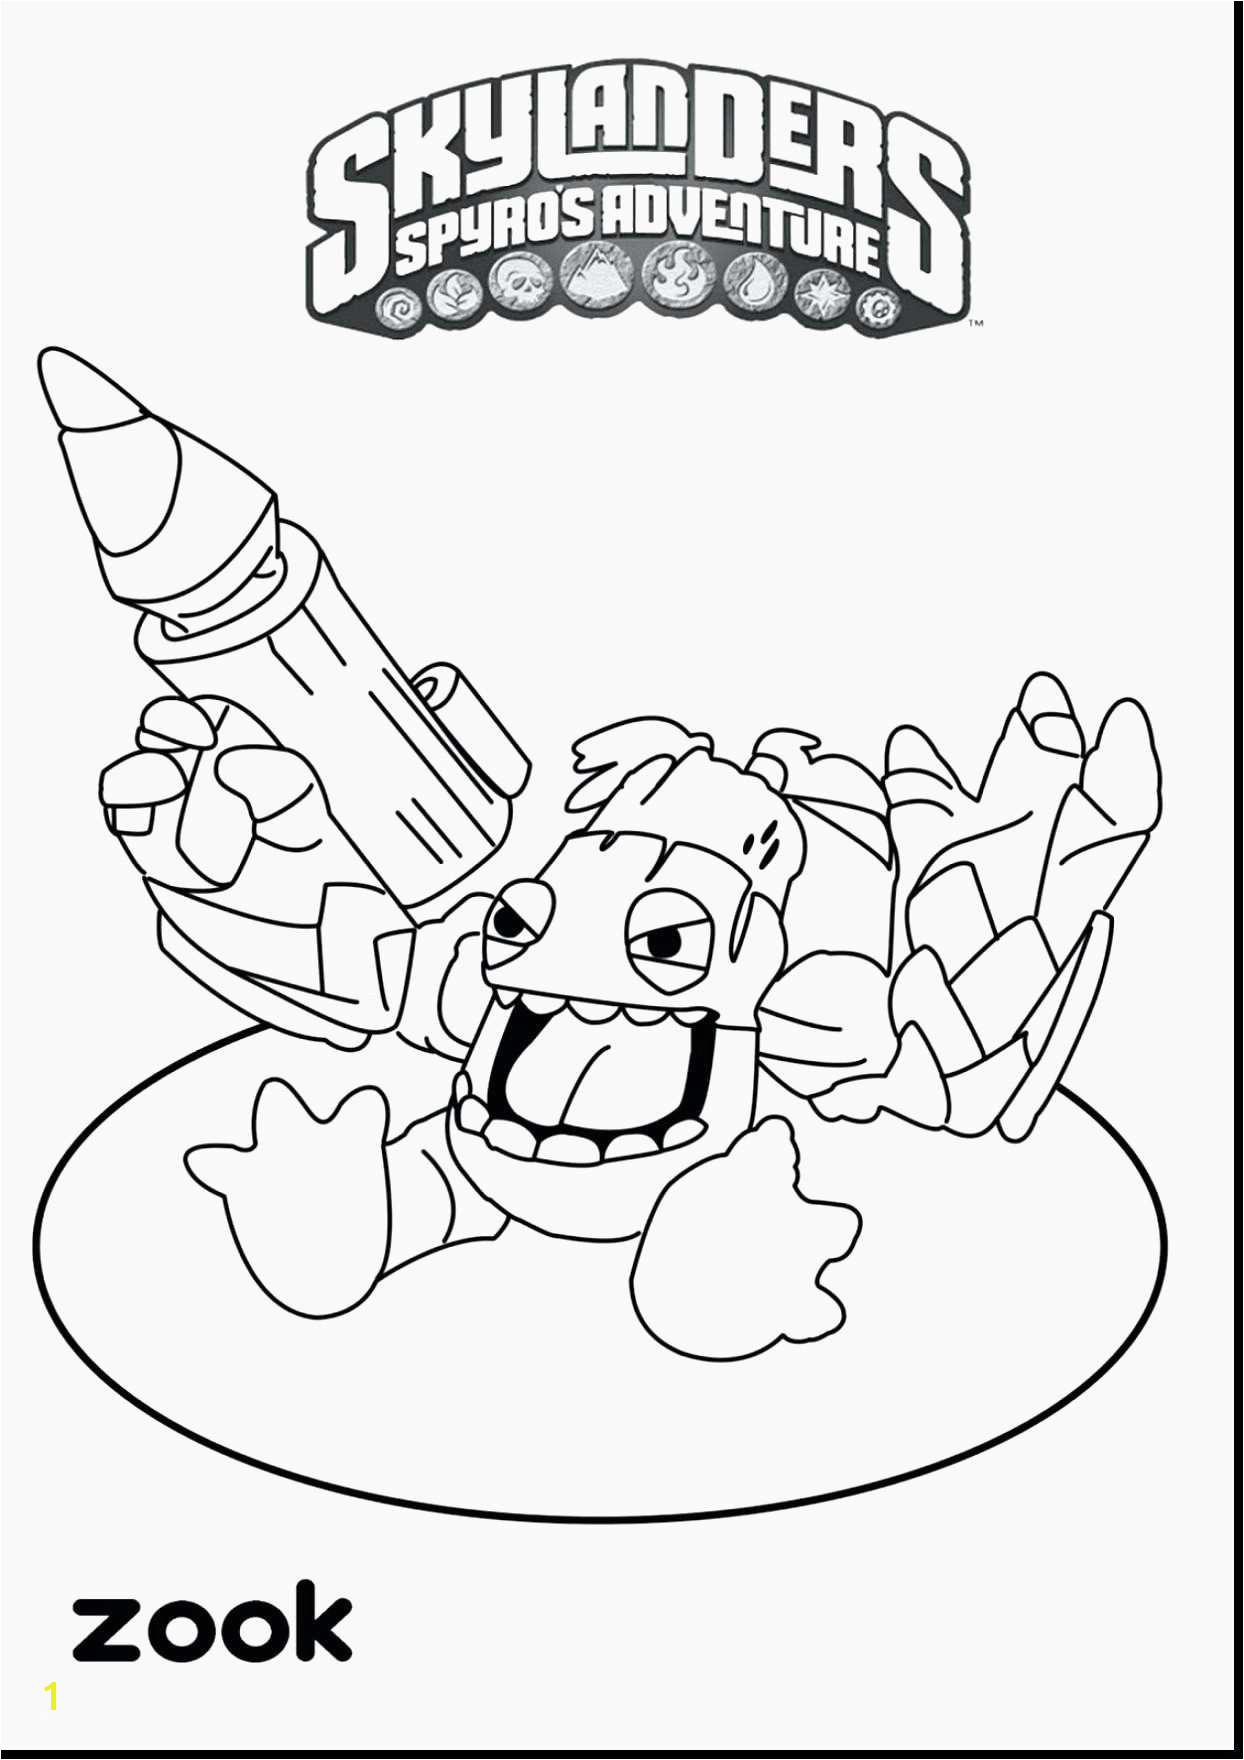 Seahawks Coloring Pages New Piston Cup Coloring Page Coloring Pages Coloring Pages